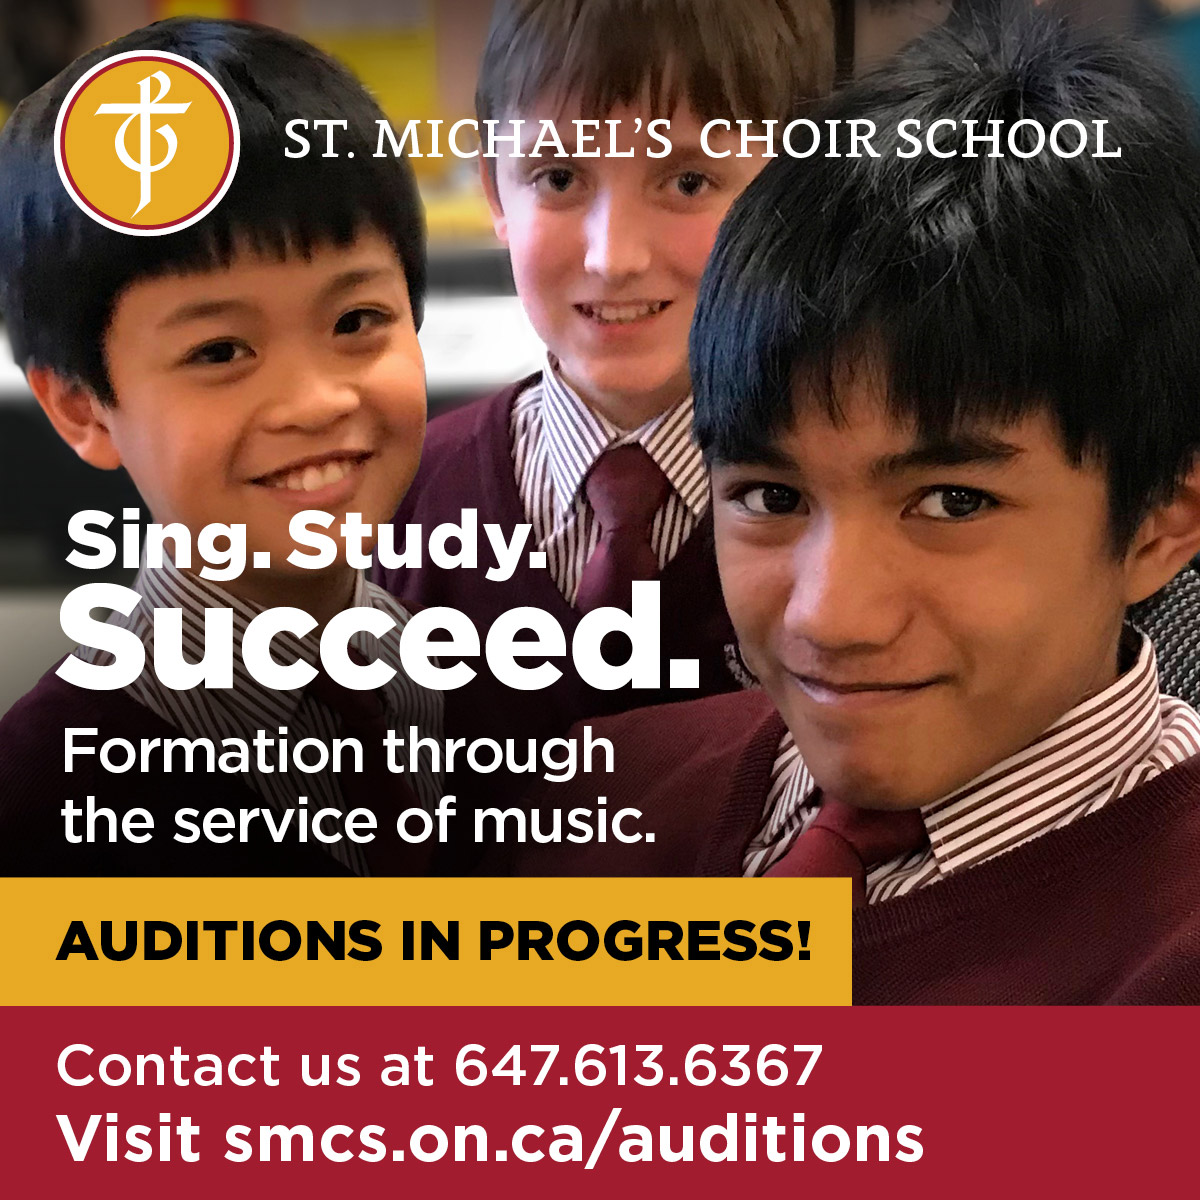 St. Michael's Choir School Auditions 2021 Poster - Poster shows an image of 3 male students smiling. Content in poster: Sing. Study. Succeed. Formation through the service of music. Auditions in progress! Contact us at 647-613-6367. Visit smcs.on.ca/auditions